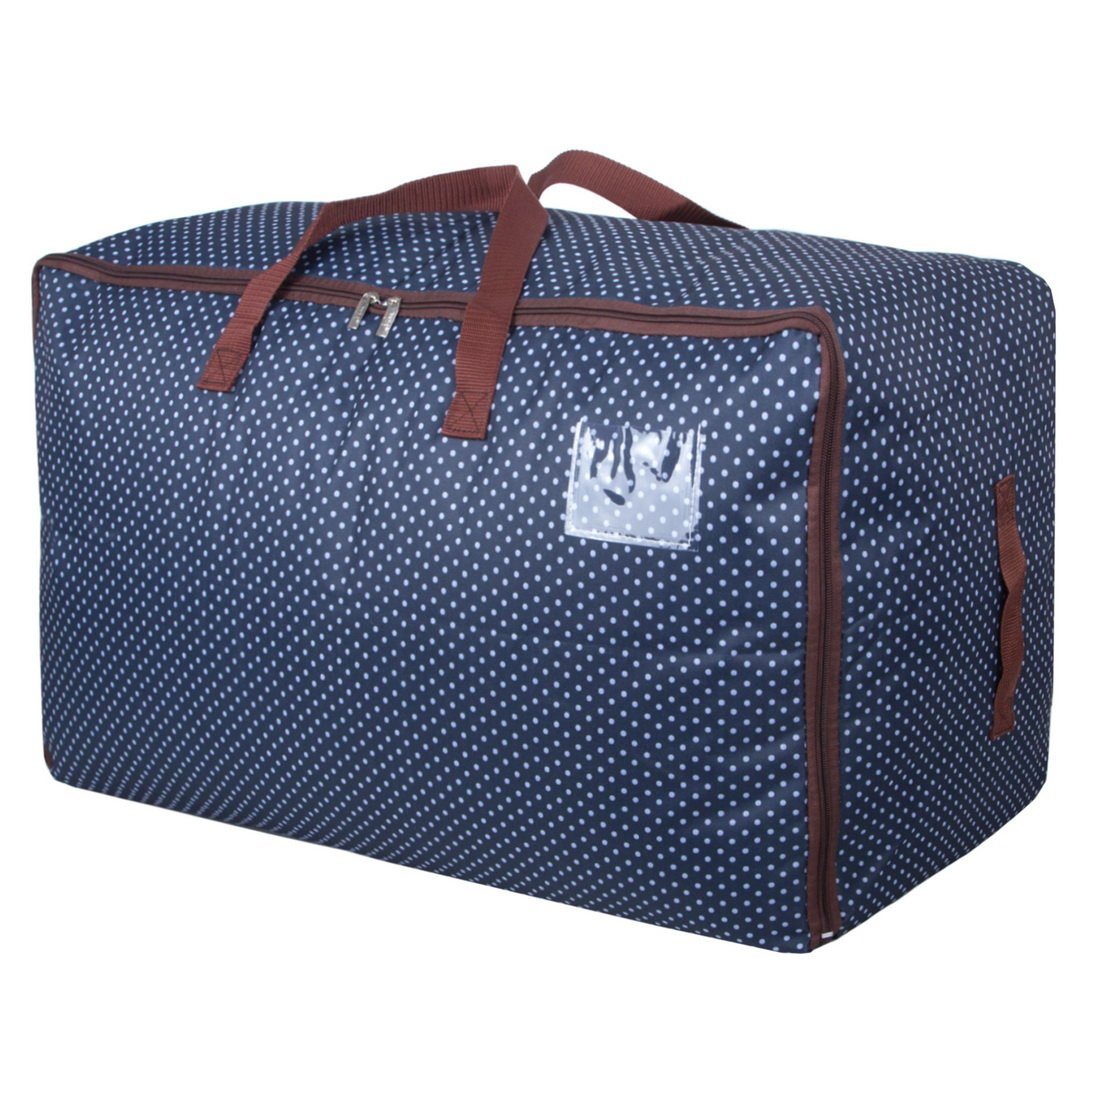 DOKEHOM DKA1011BL2 100L Large Storage Bag (4 Colors), Fabric Clothes Bag, Thick Ultra Size Under Bed Storage, Moisture Proof (Blue) IMOTECH TECHNOLOGY